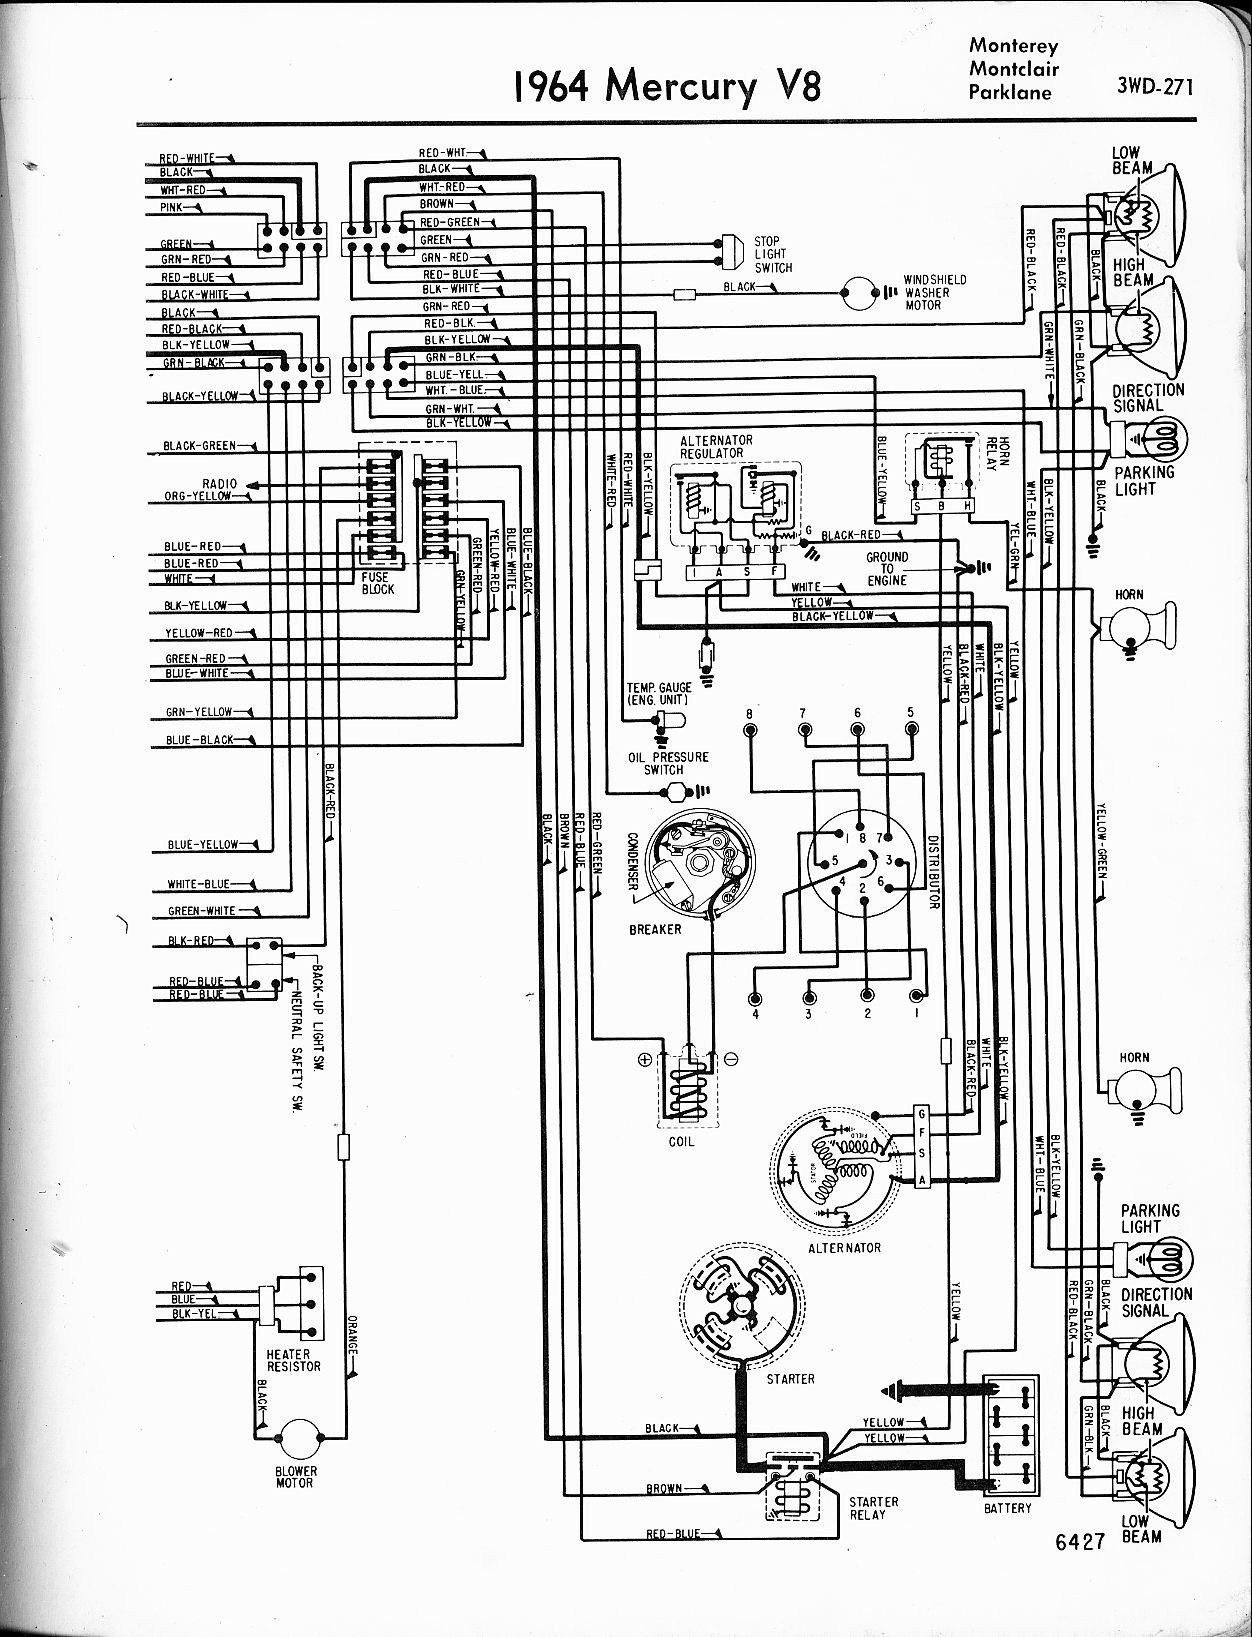 Indmar Wiring Harness Diagram - All Wiring Diagram Data - Yamaha Outboard Wiring Harness Diagram